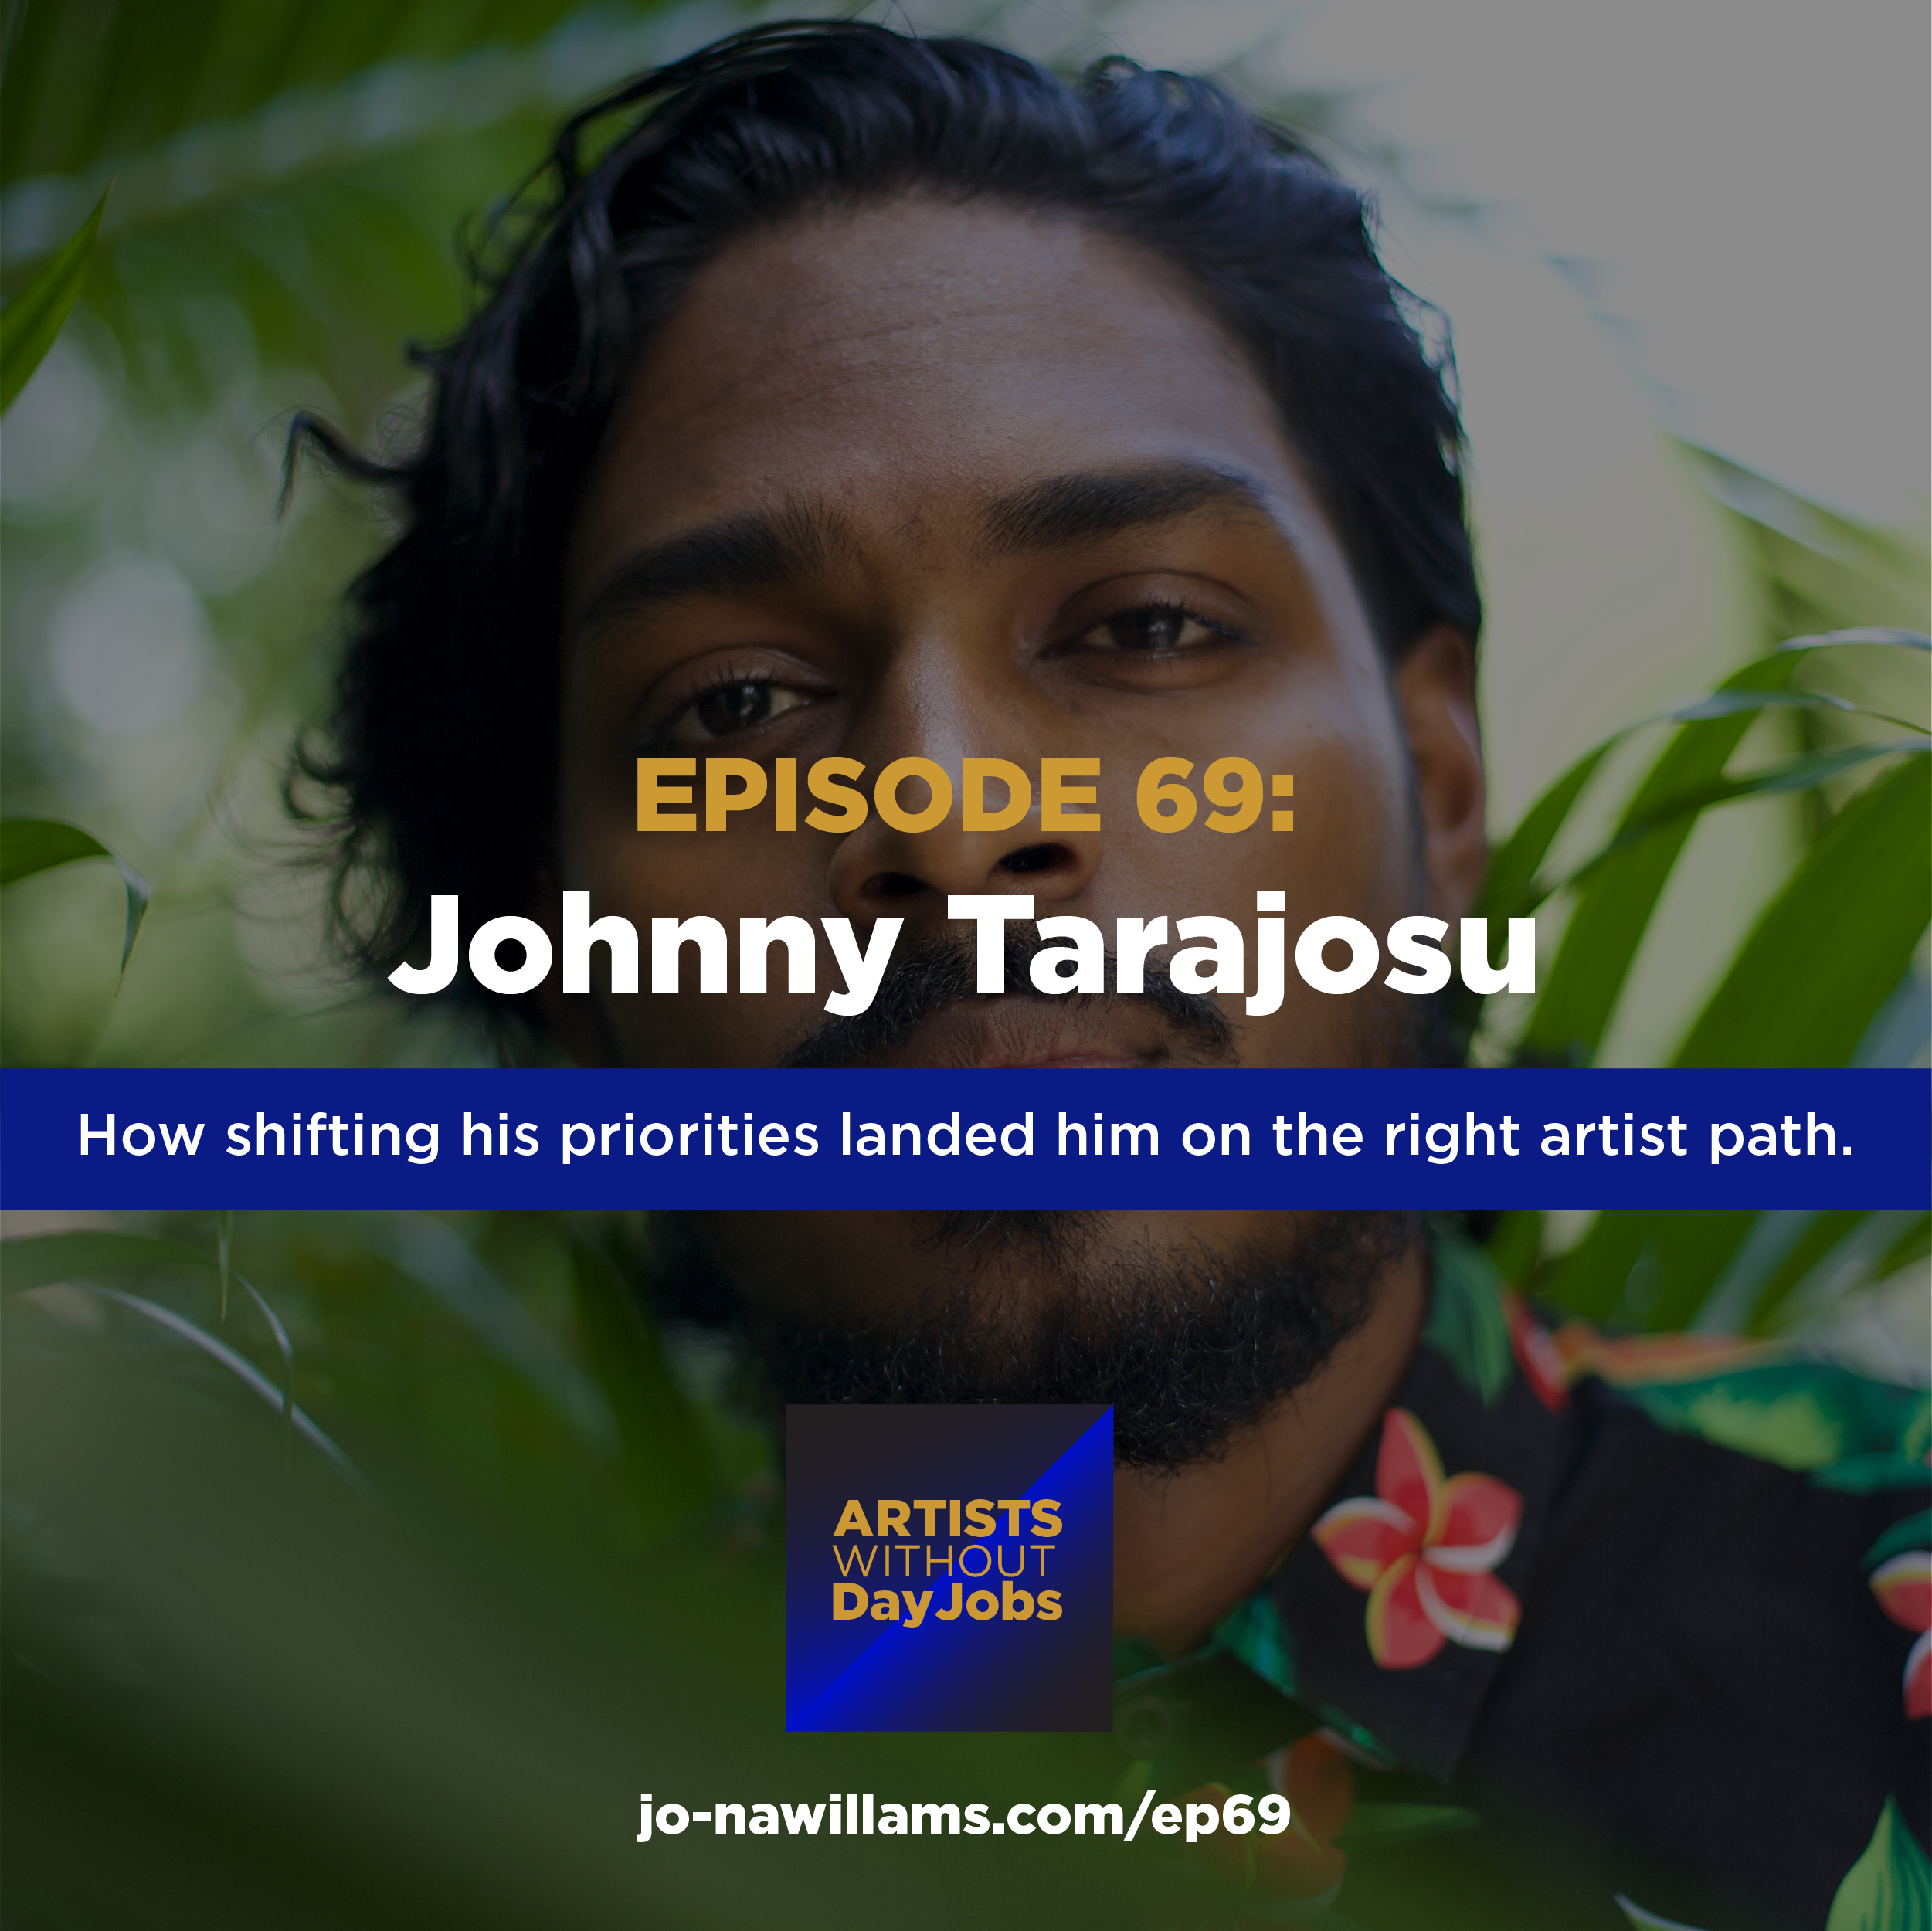 Ep 69: How shifting his priorities landed him on the right artist path